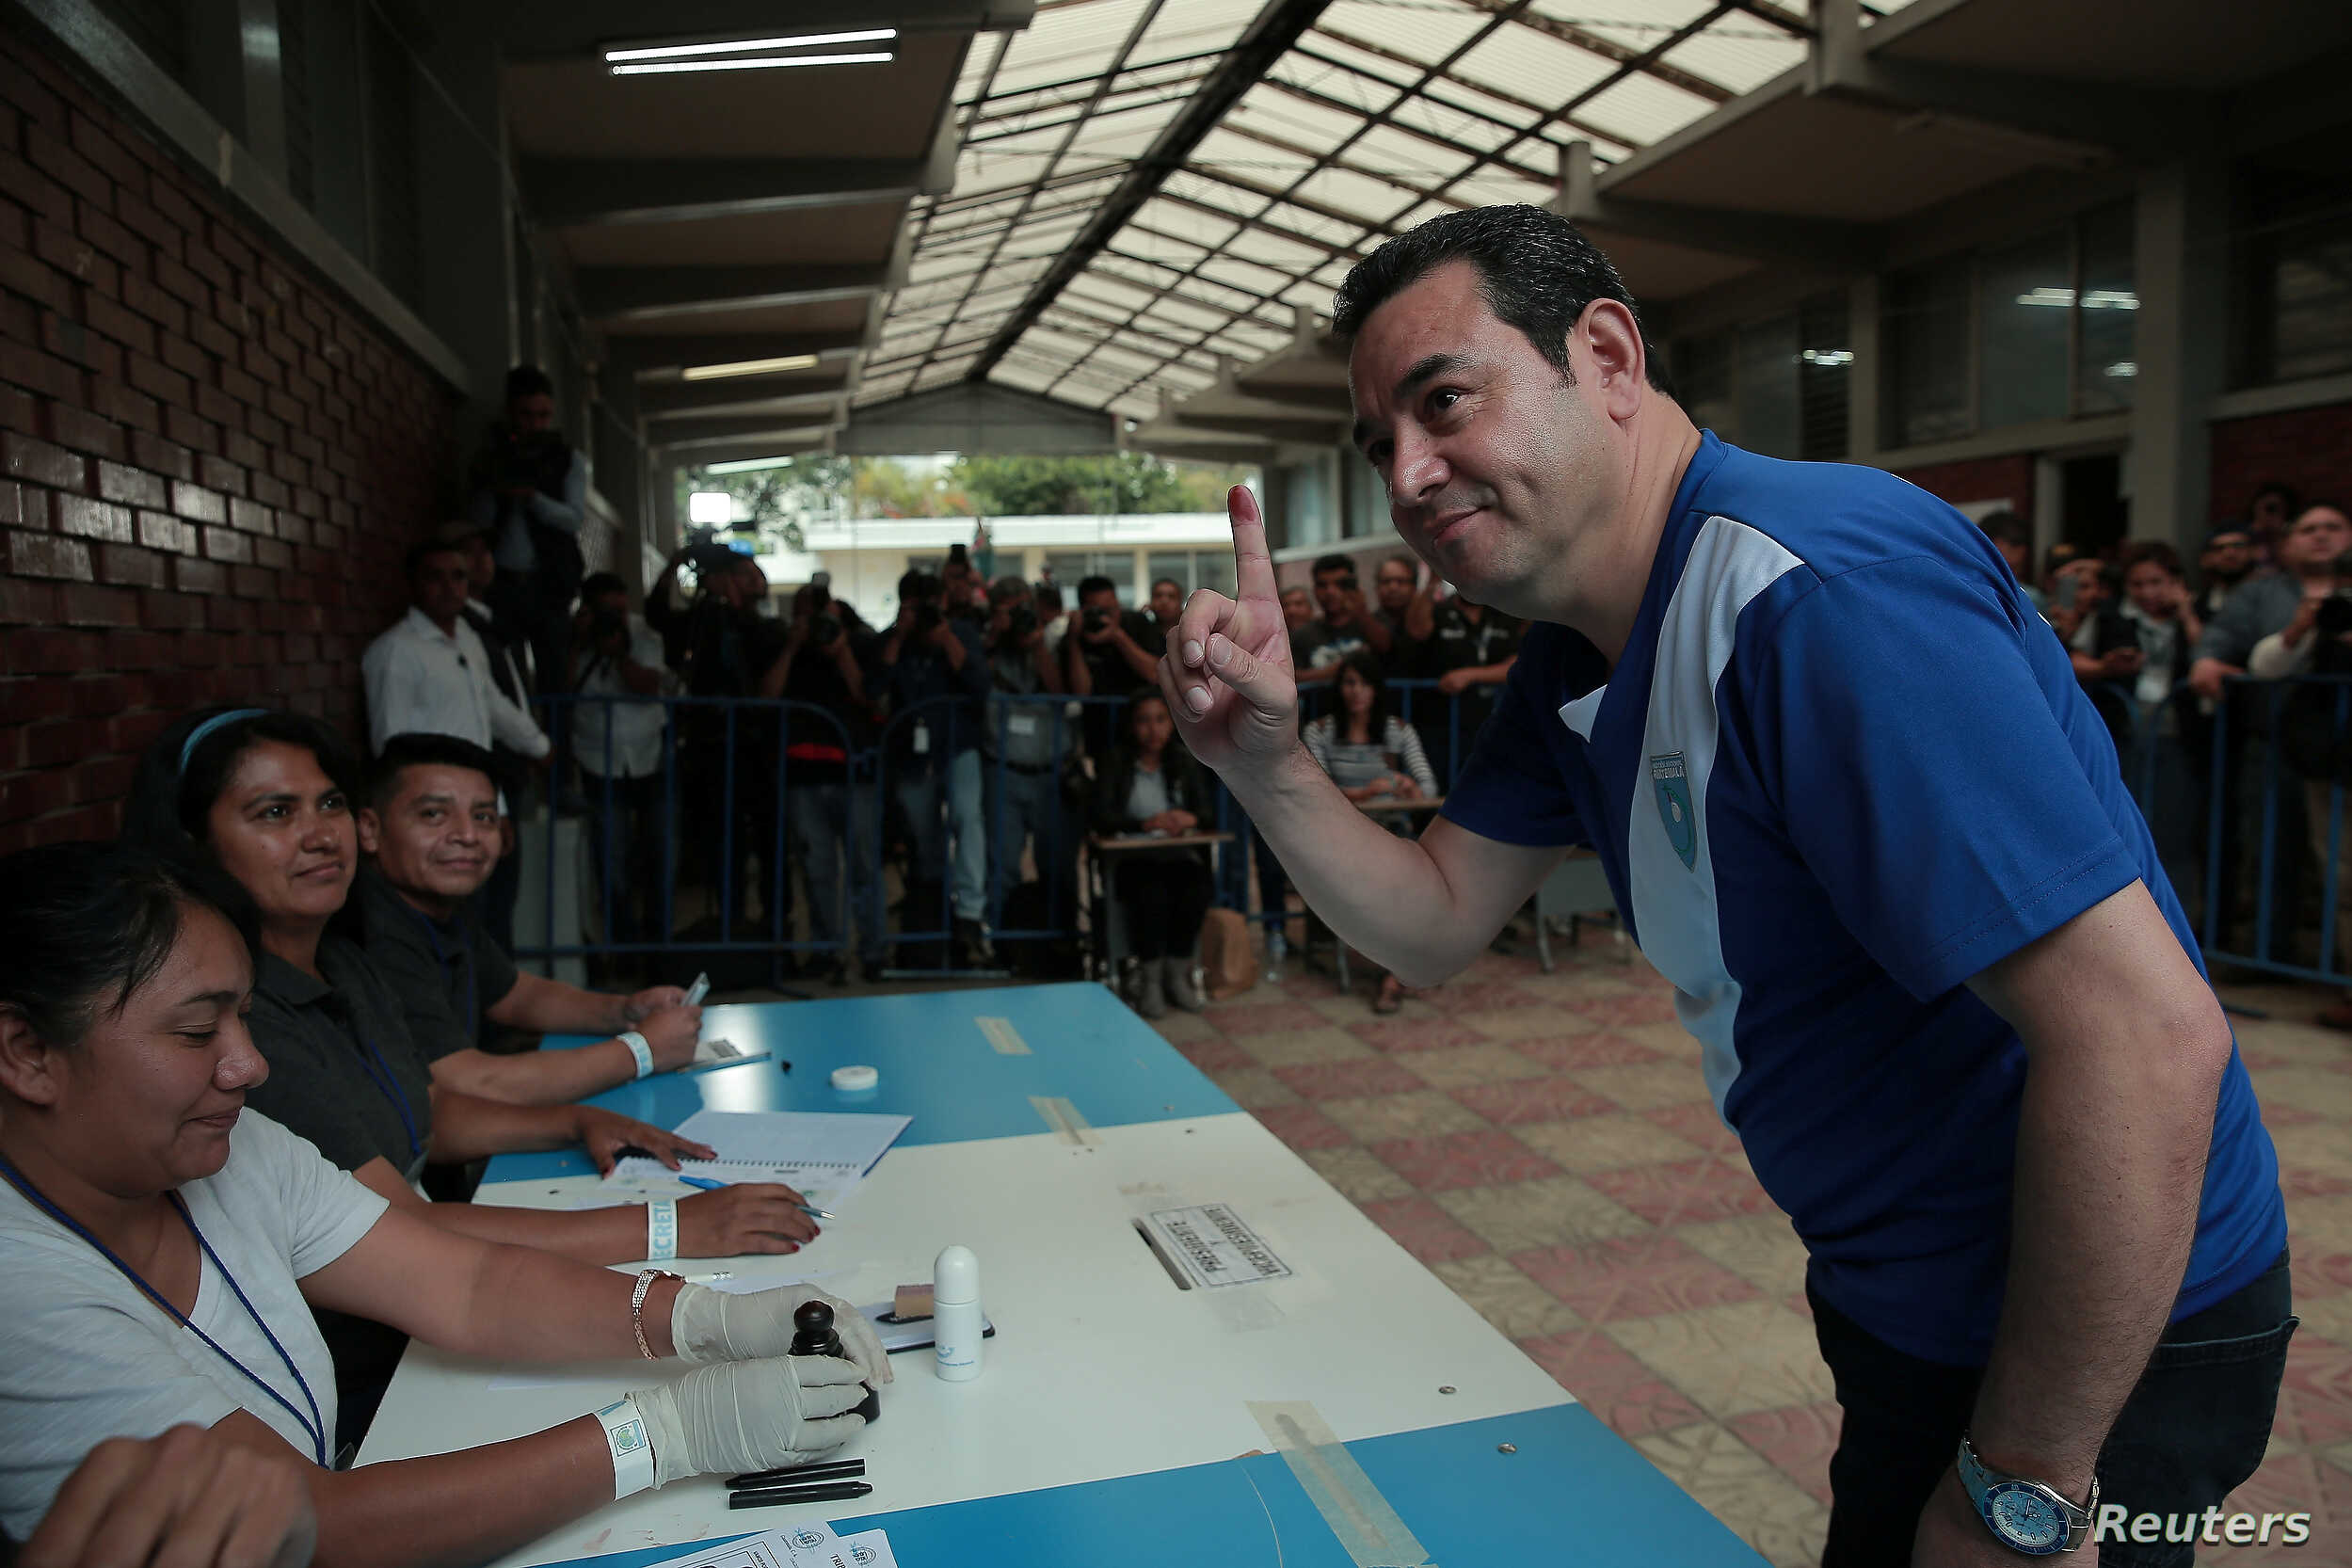 Guatemalan President Jimmy Morales shows his ink-stained finger after casting his ballot at a polling station during the presidential election second round run-off vote in Mixco, Guatemala, Aug. 11, 2019.